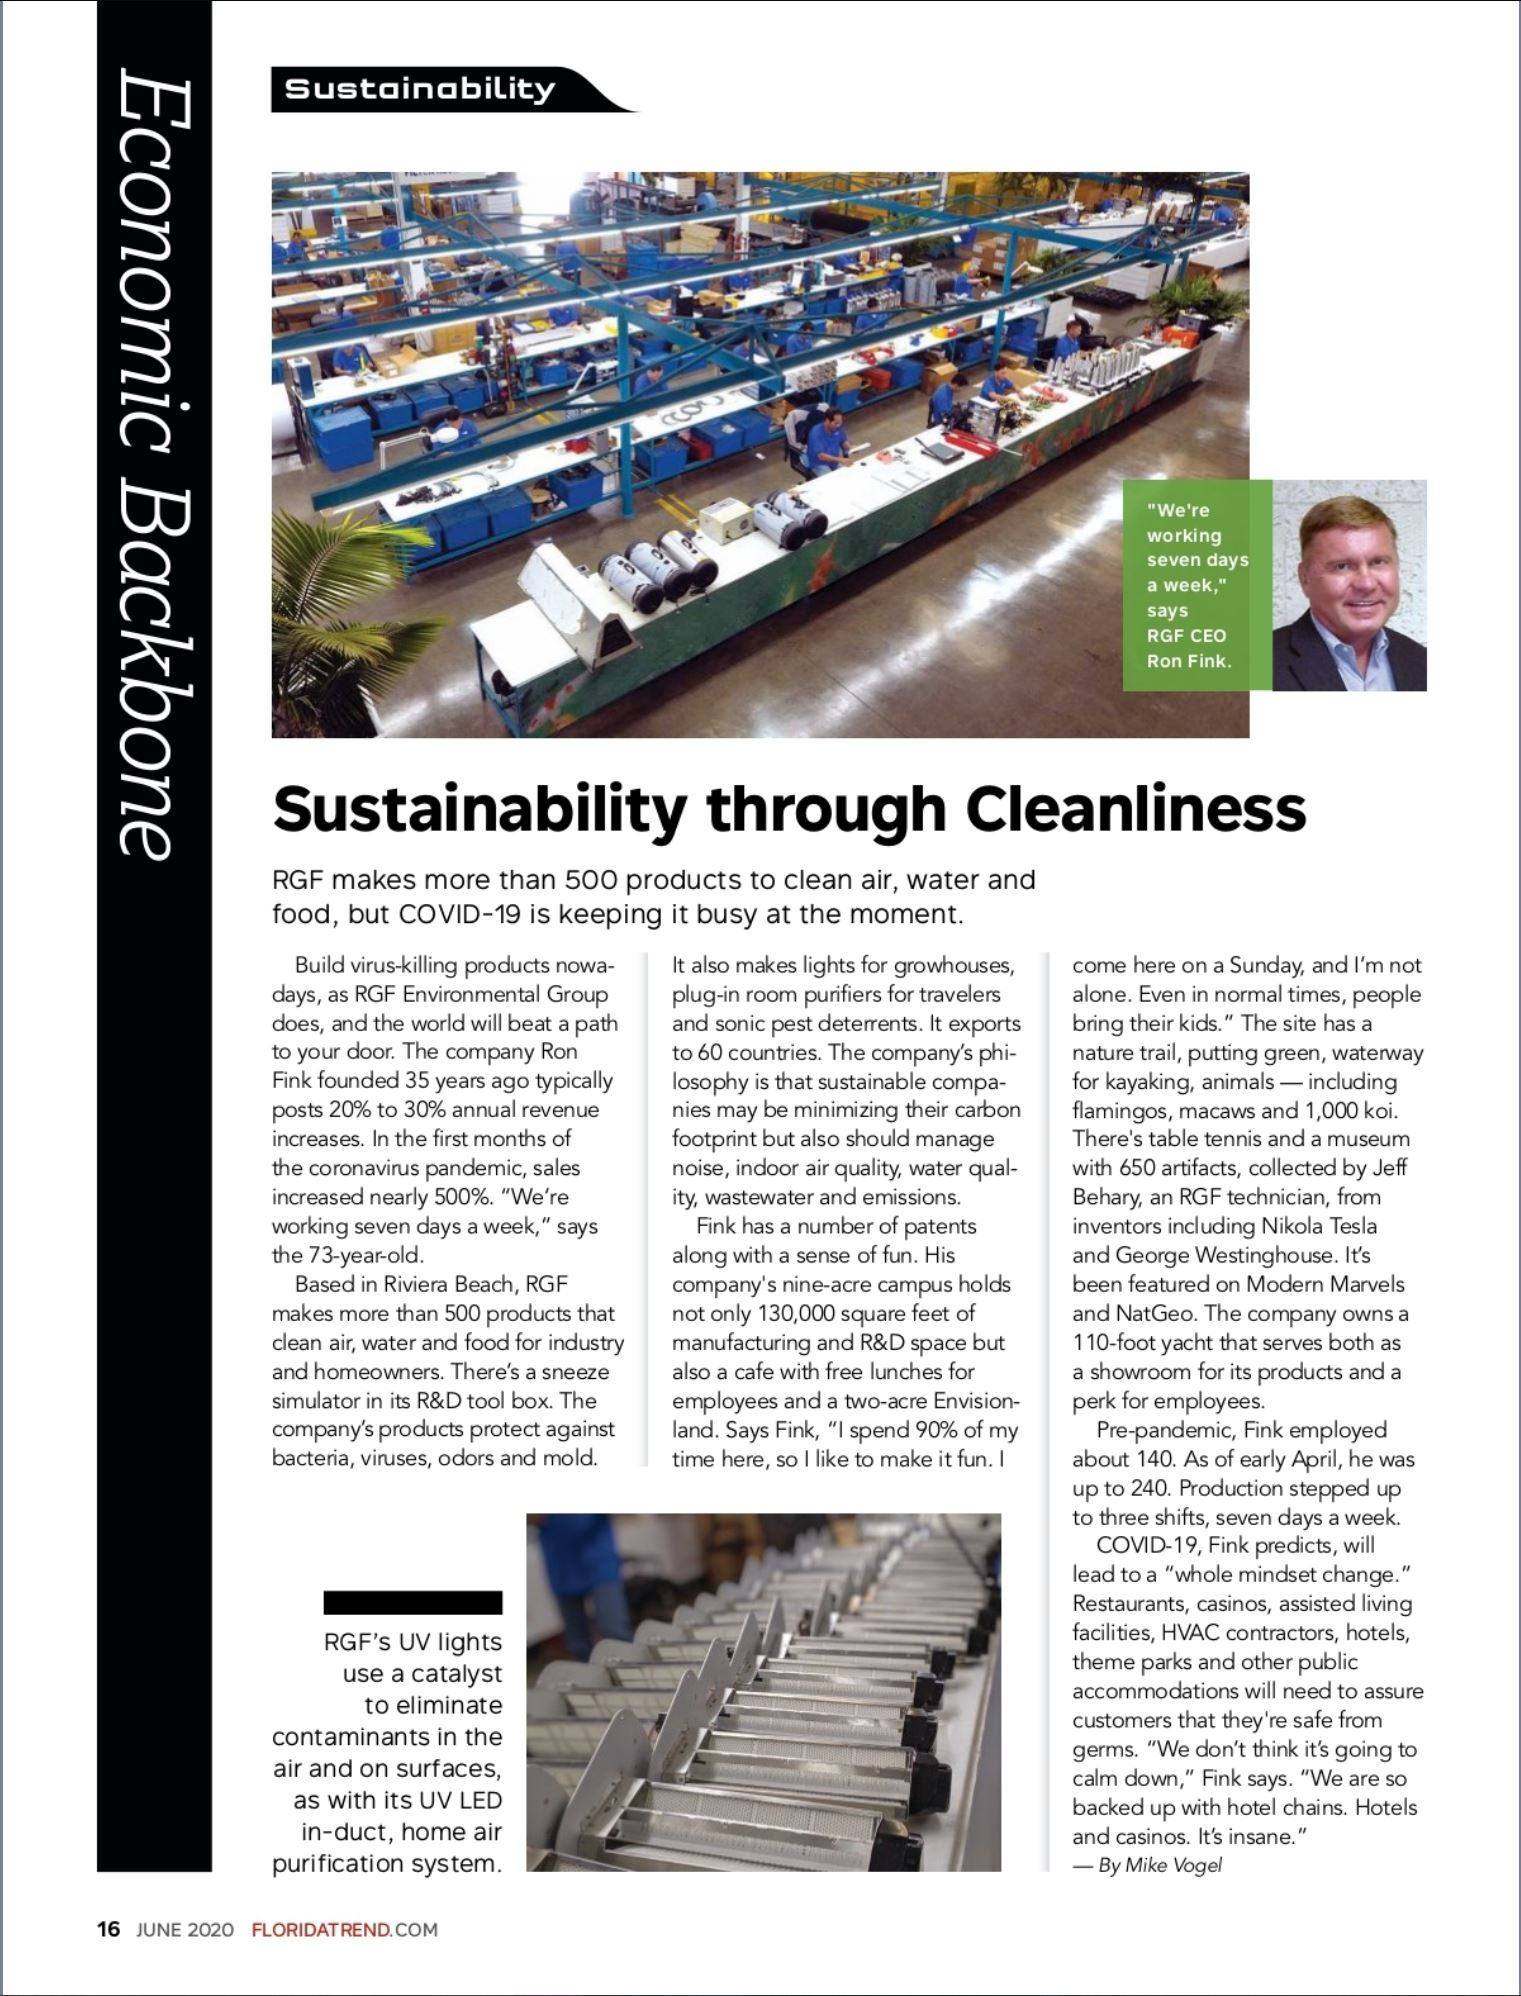 Florida Trend, June 2020 - Sustainability through Cleanliness